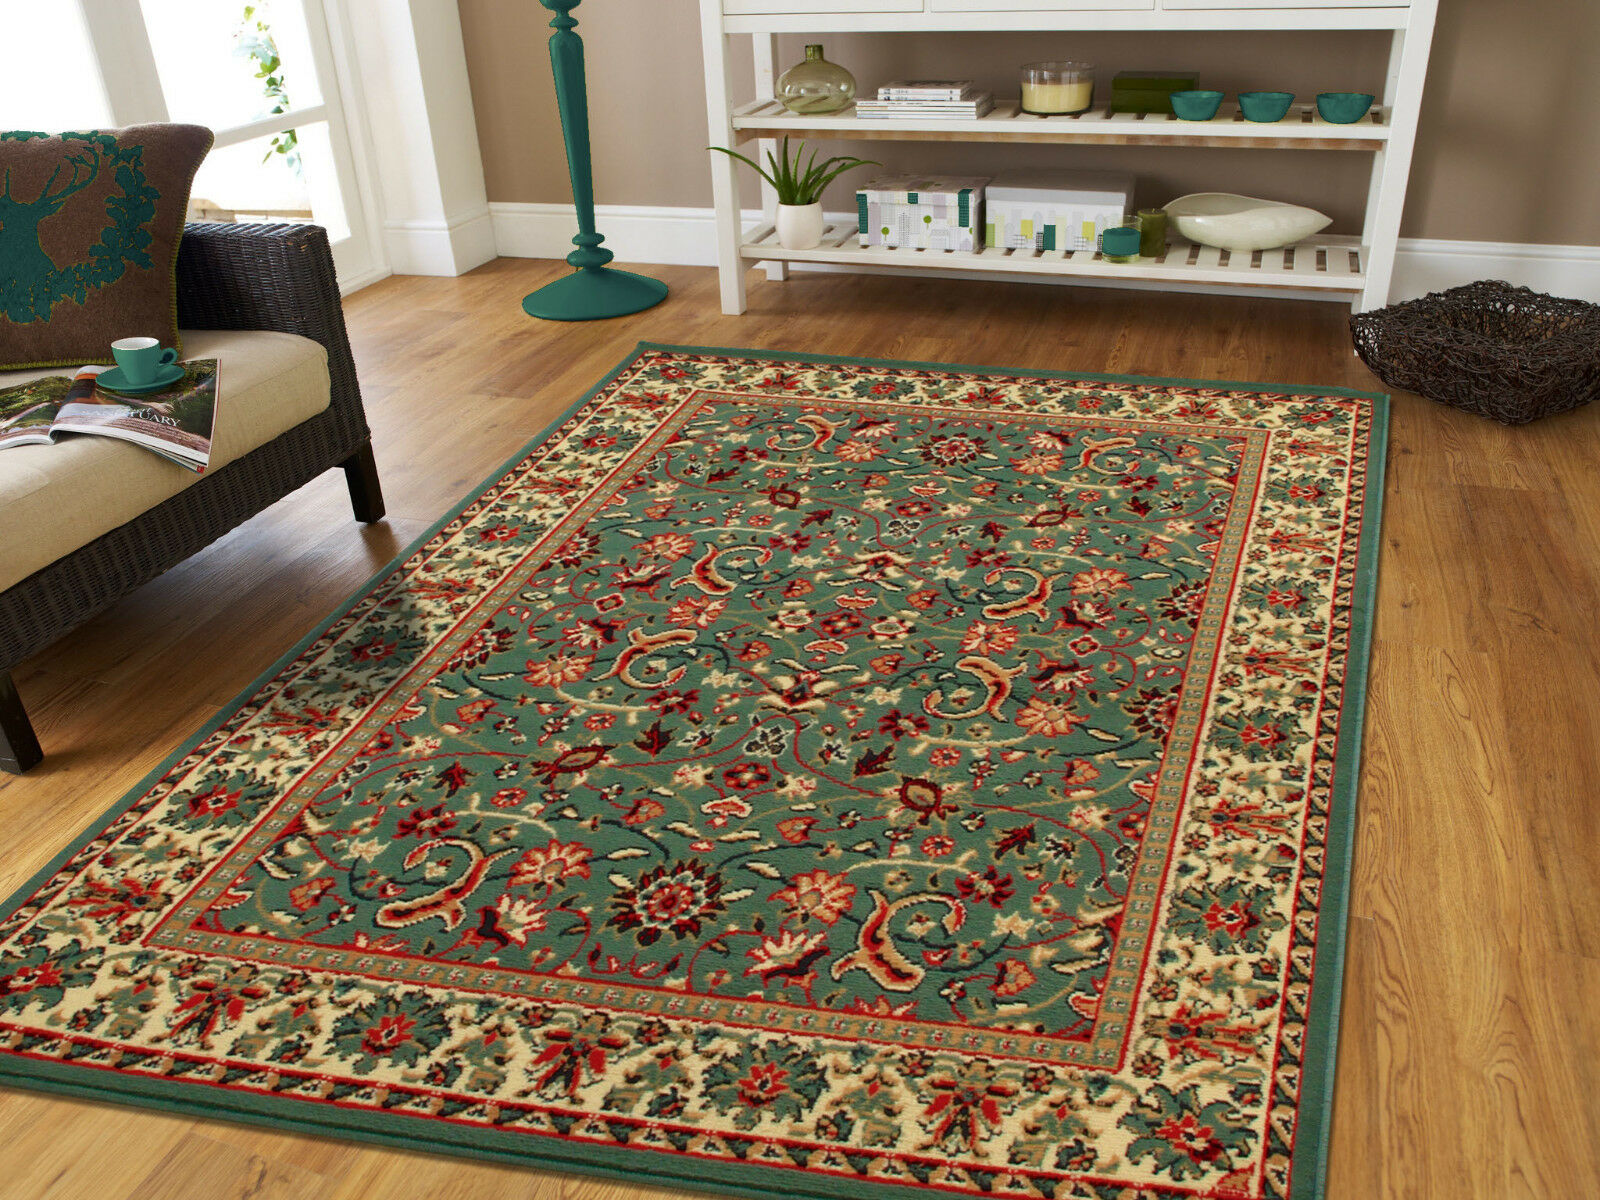 Traditional Old Area Rug Hand Knotted Wool Oriental Room Size Carpet 10x13 Red For Sale Online Ebay